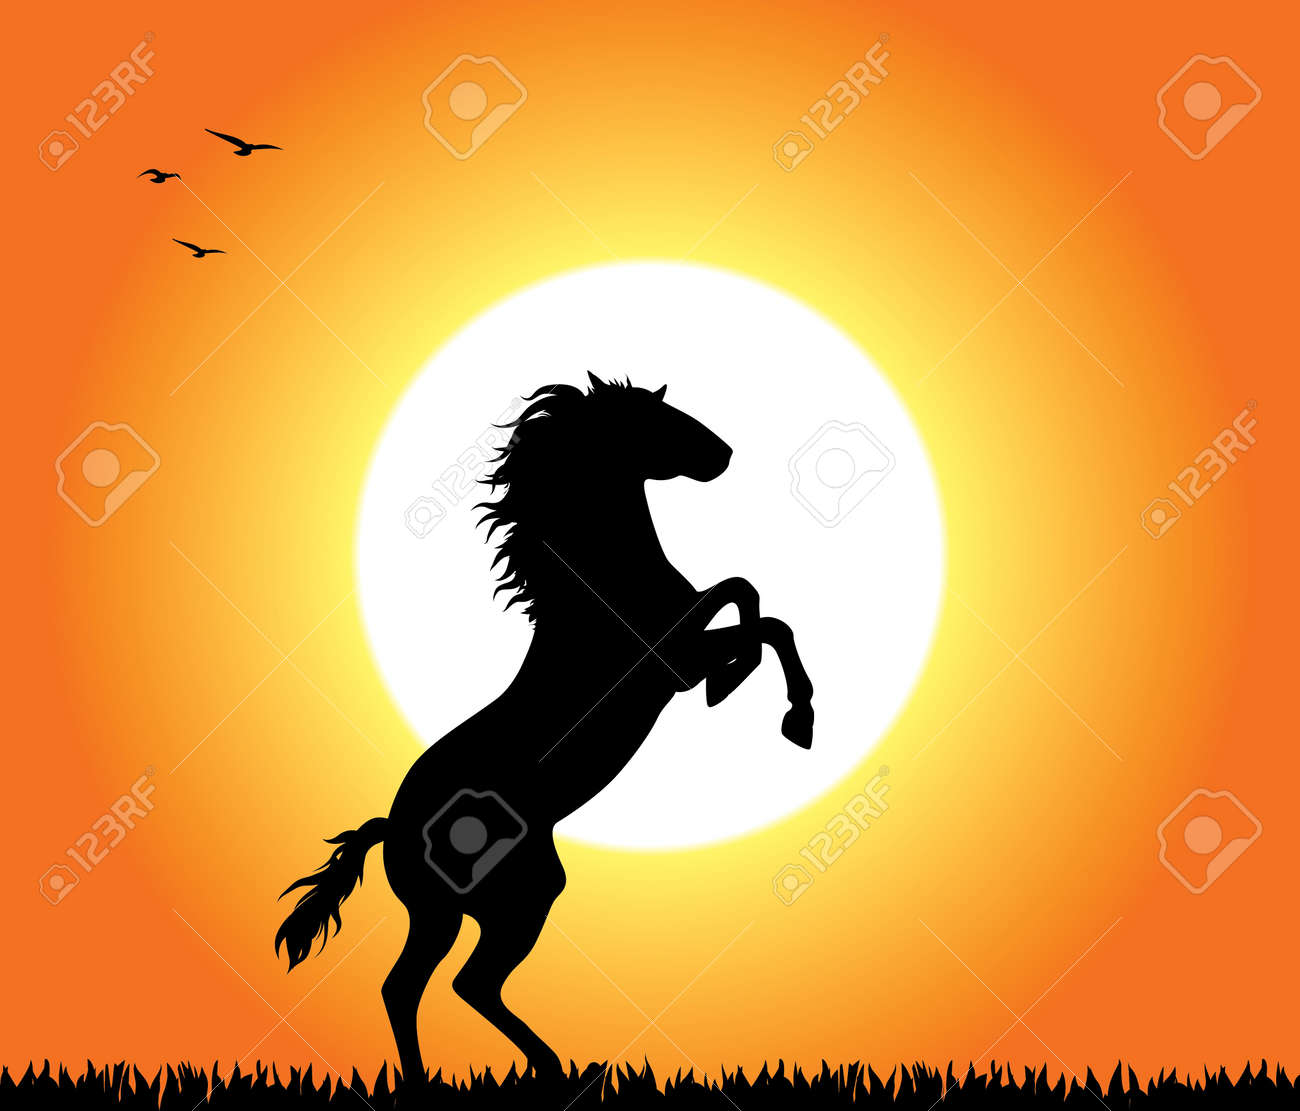 A horse rearing at sunset. Editable vector illustration. Stock Vector - 8488816